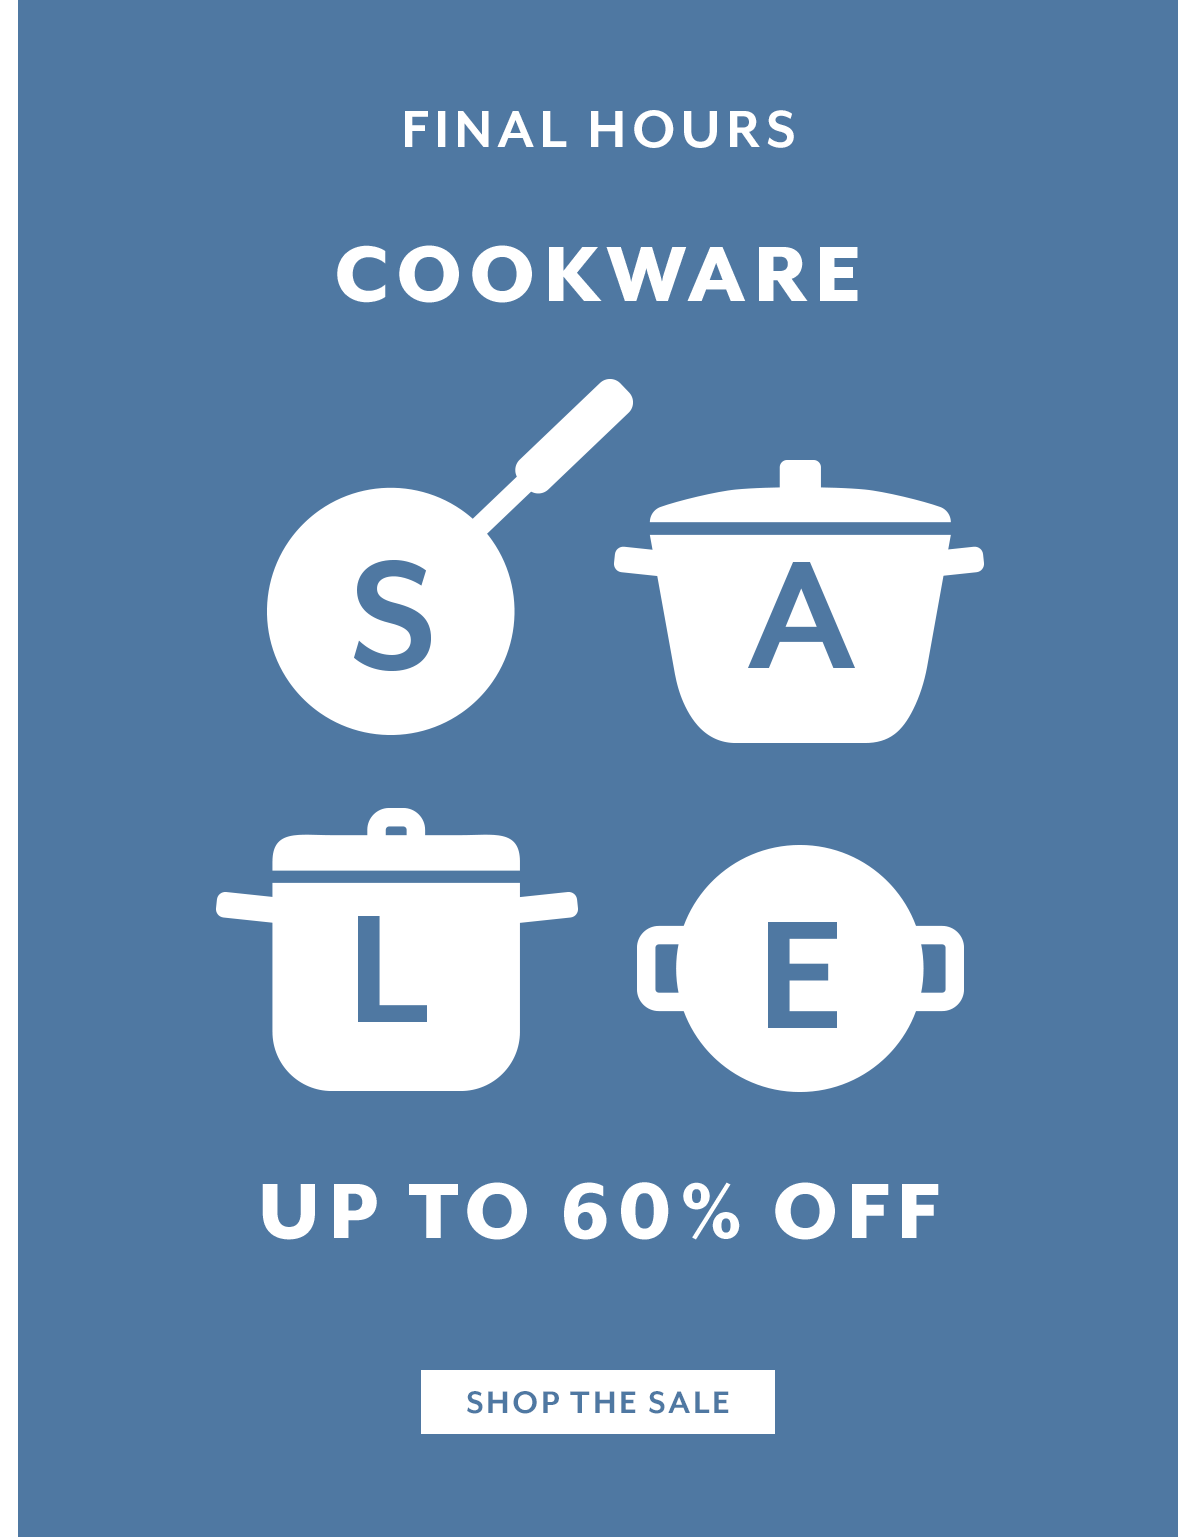 Cookware Sale • Final Hours